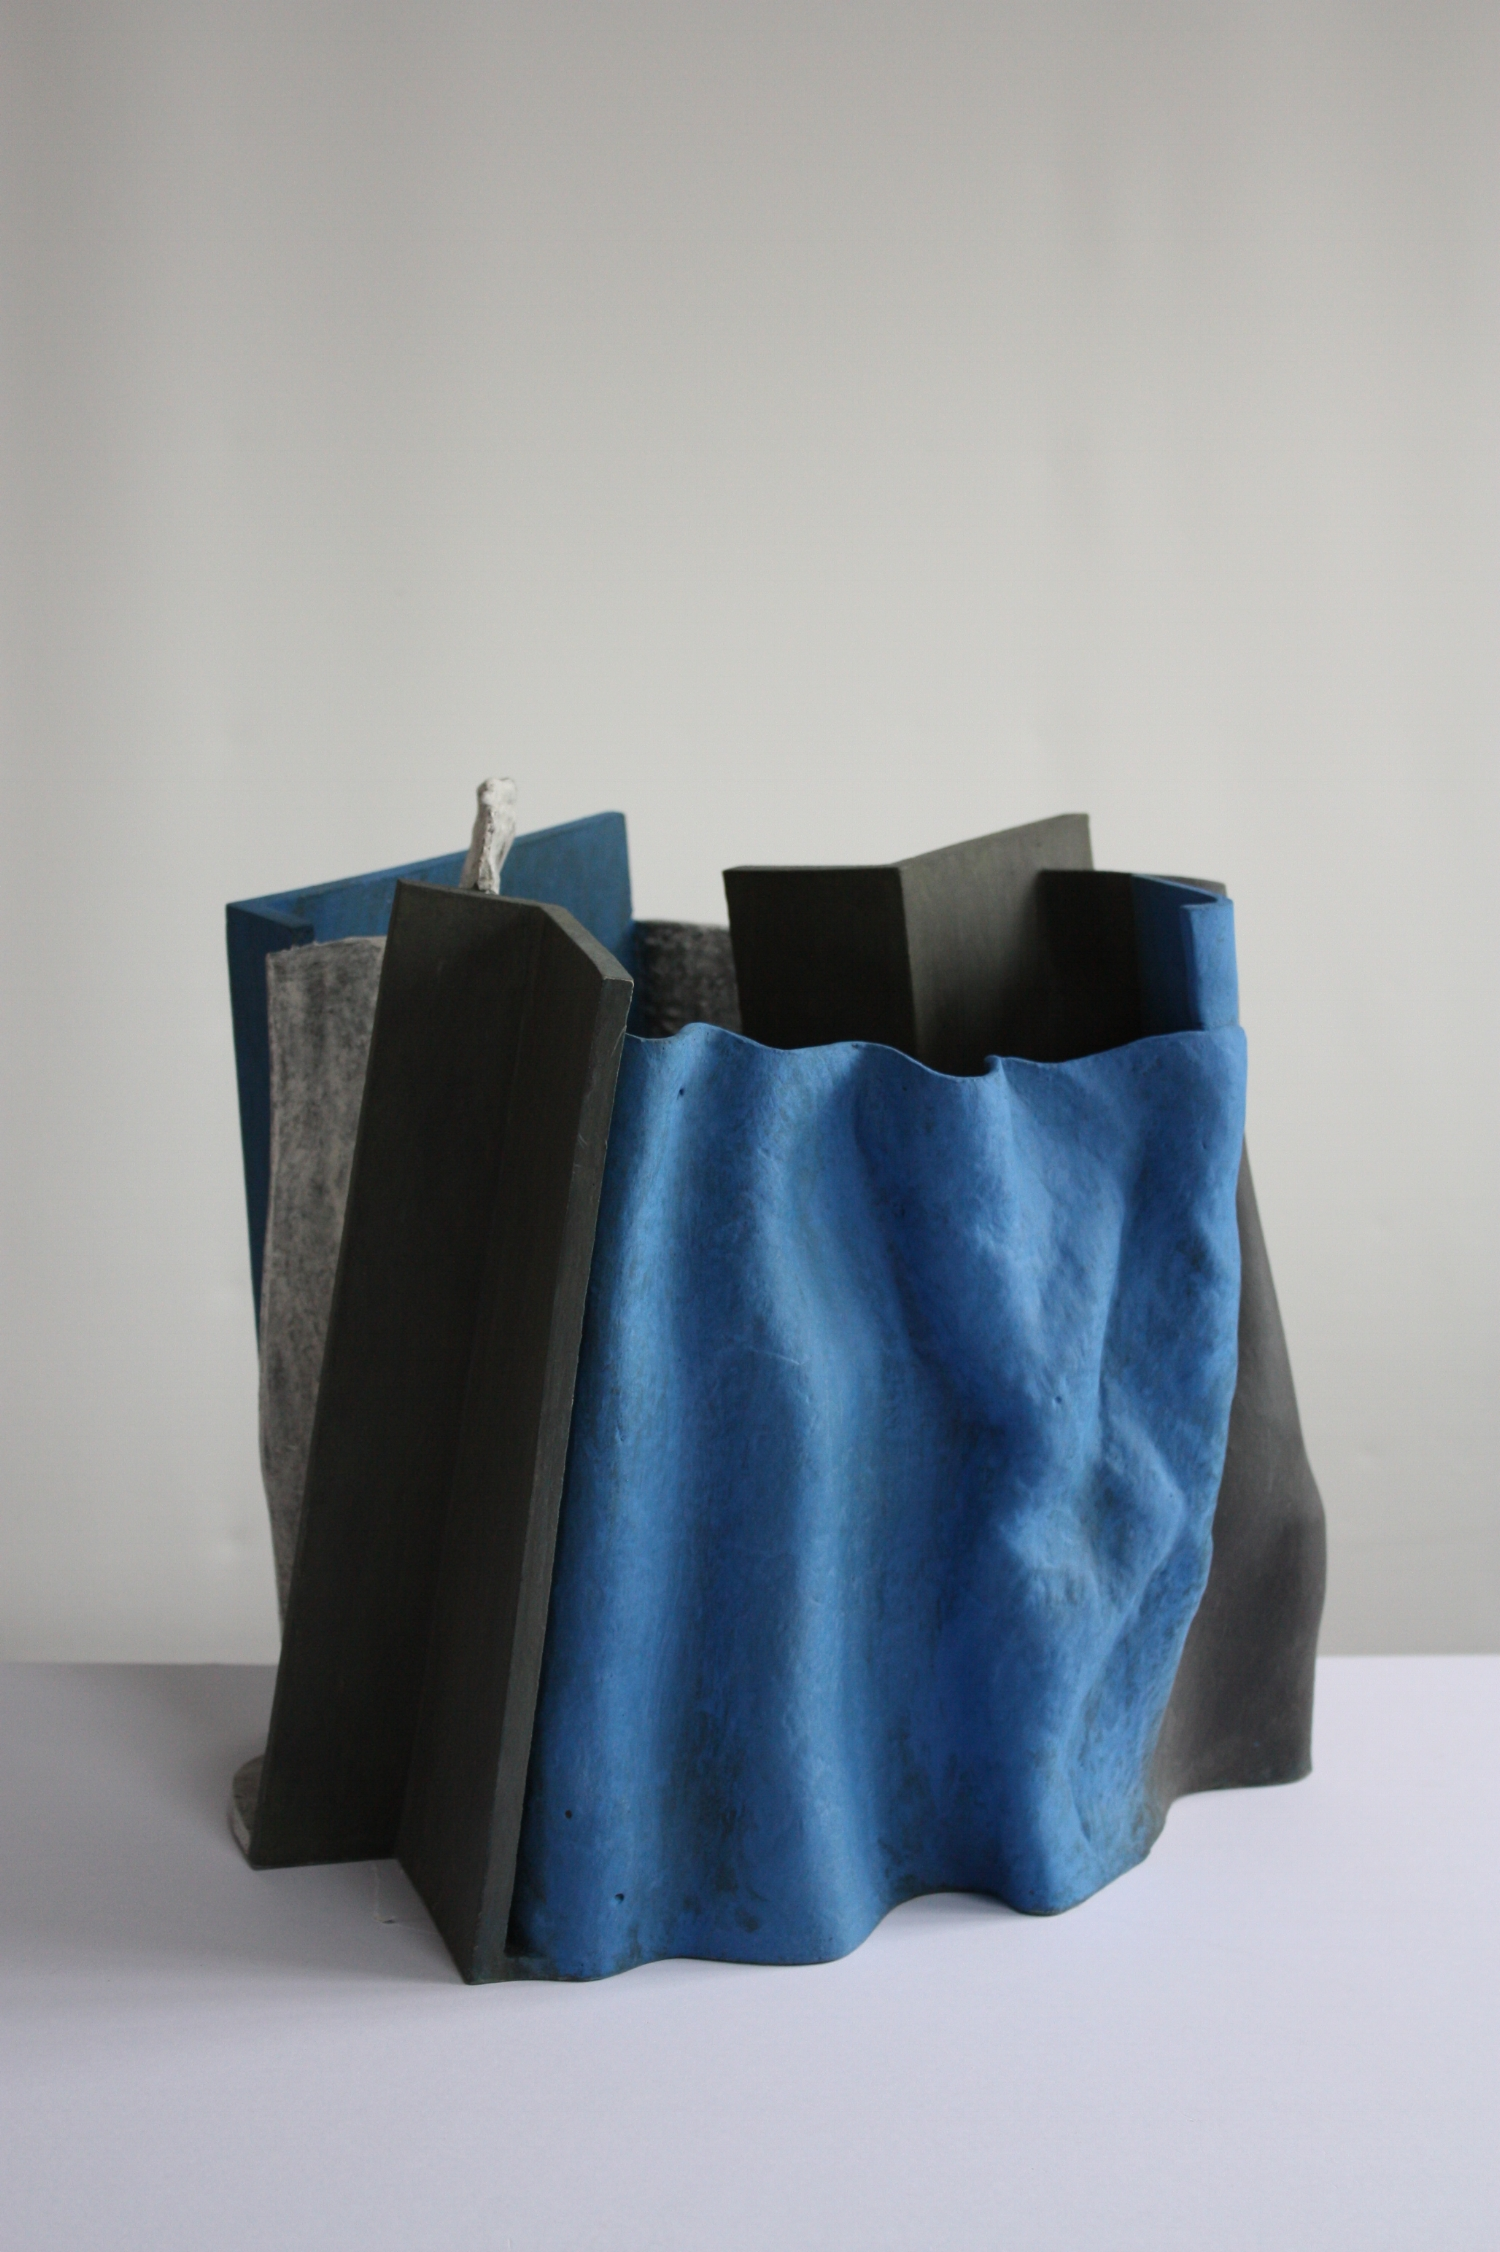 Folded blue, 2011, 33cm high